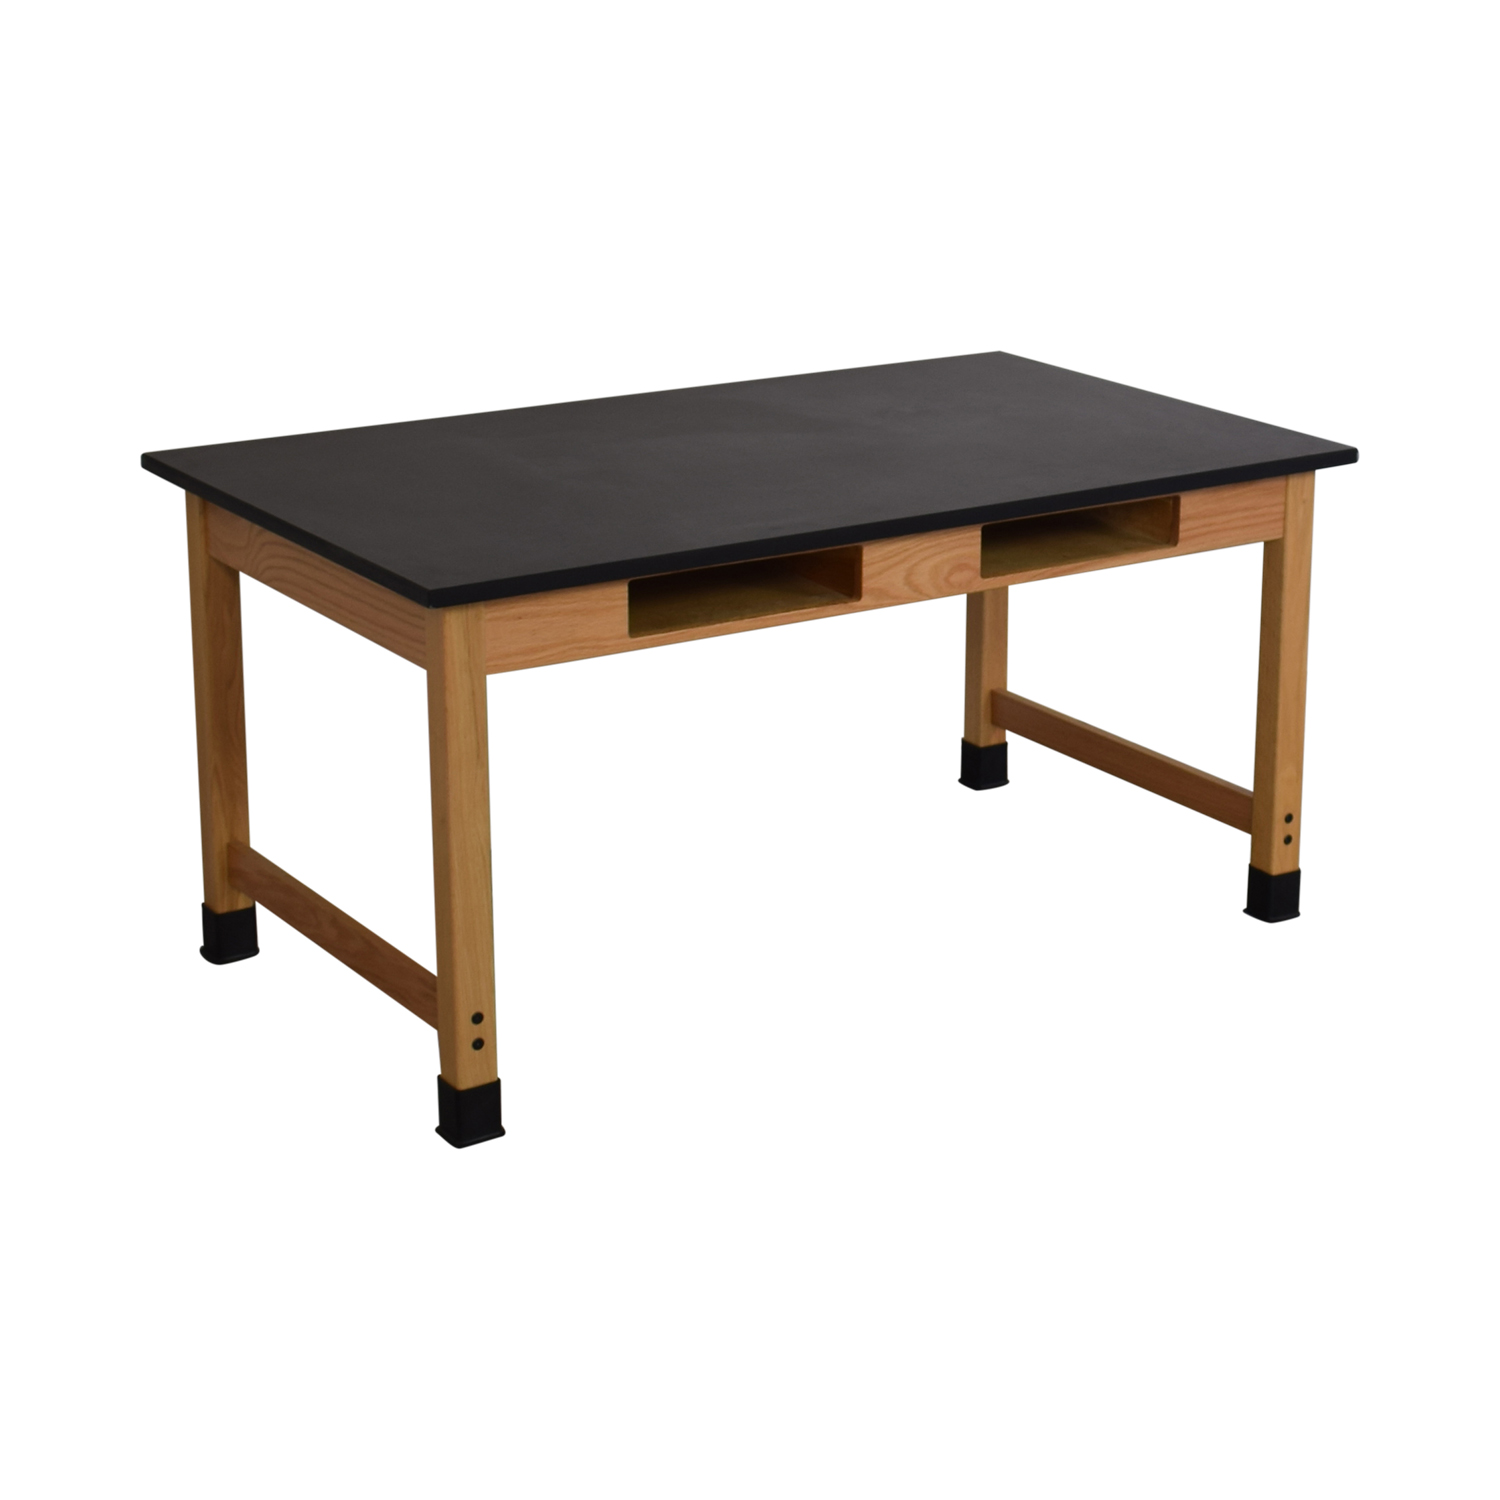 Diversified Woodcrafts Diversified Woodcrafts Science Table nj